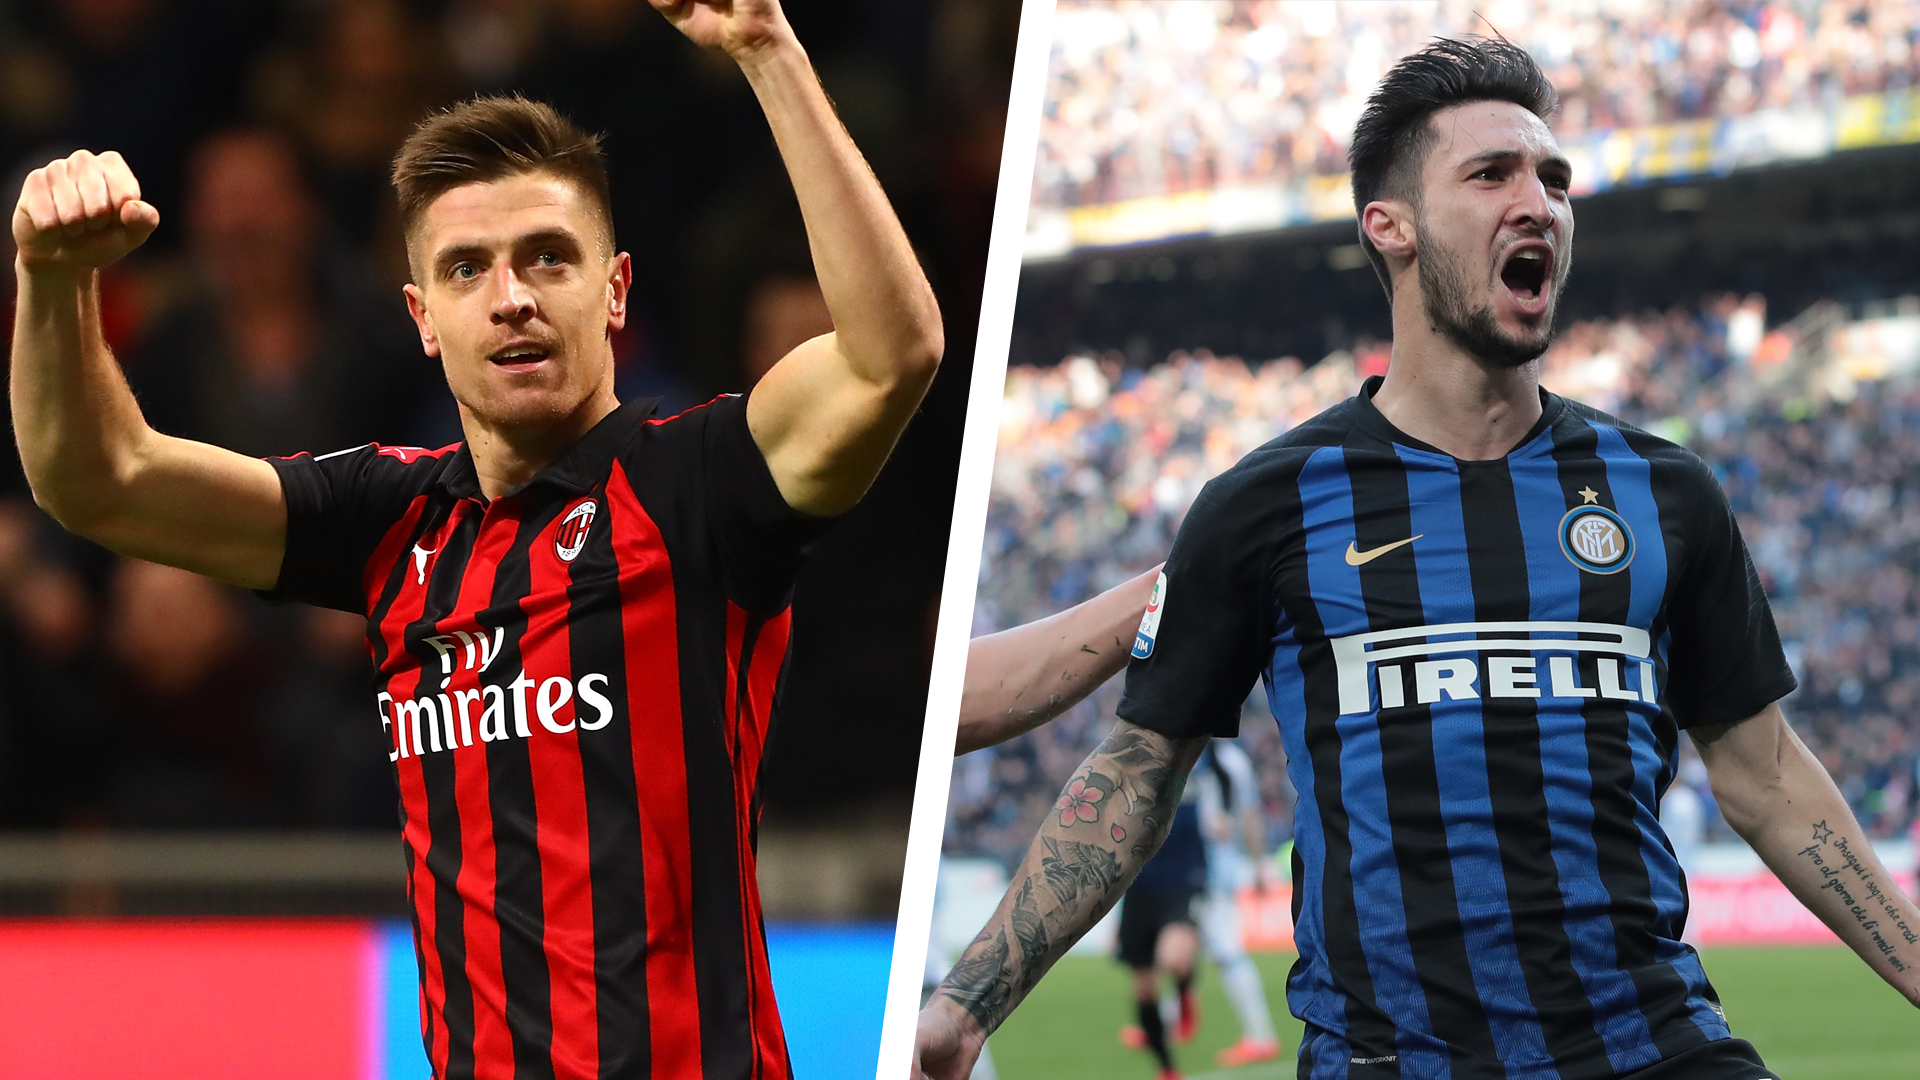 Ac Milan Vs Inter Rivalry History Top Scorers Players Who Played For Both Clubs Goal Com